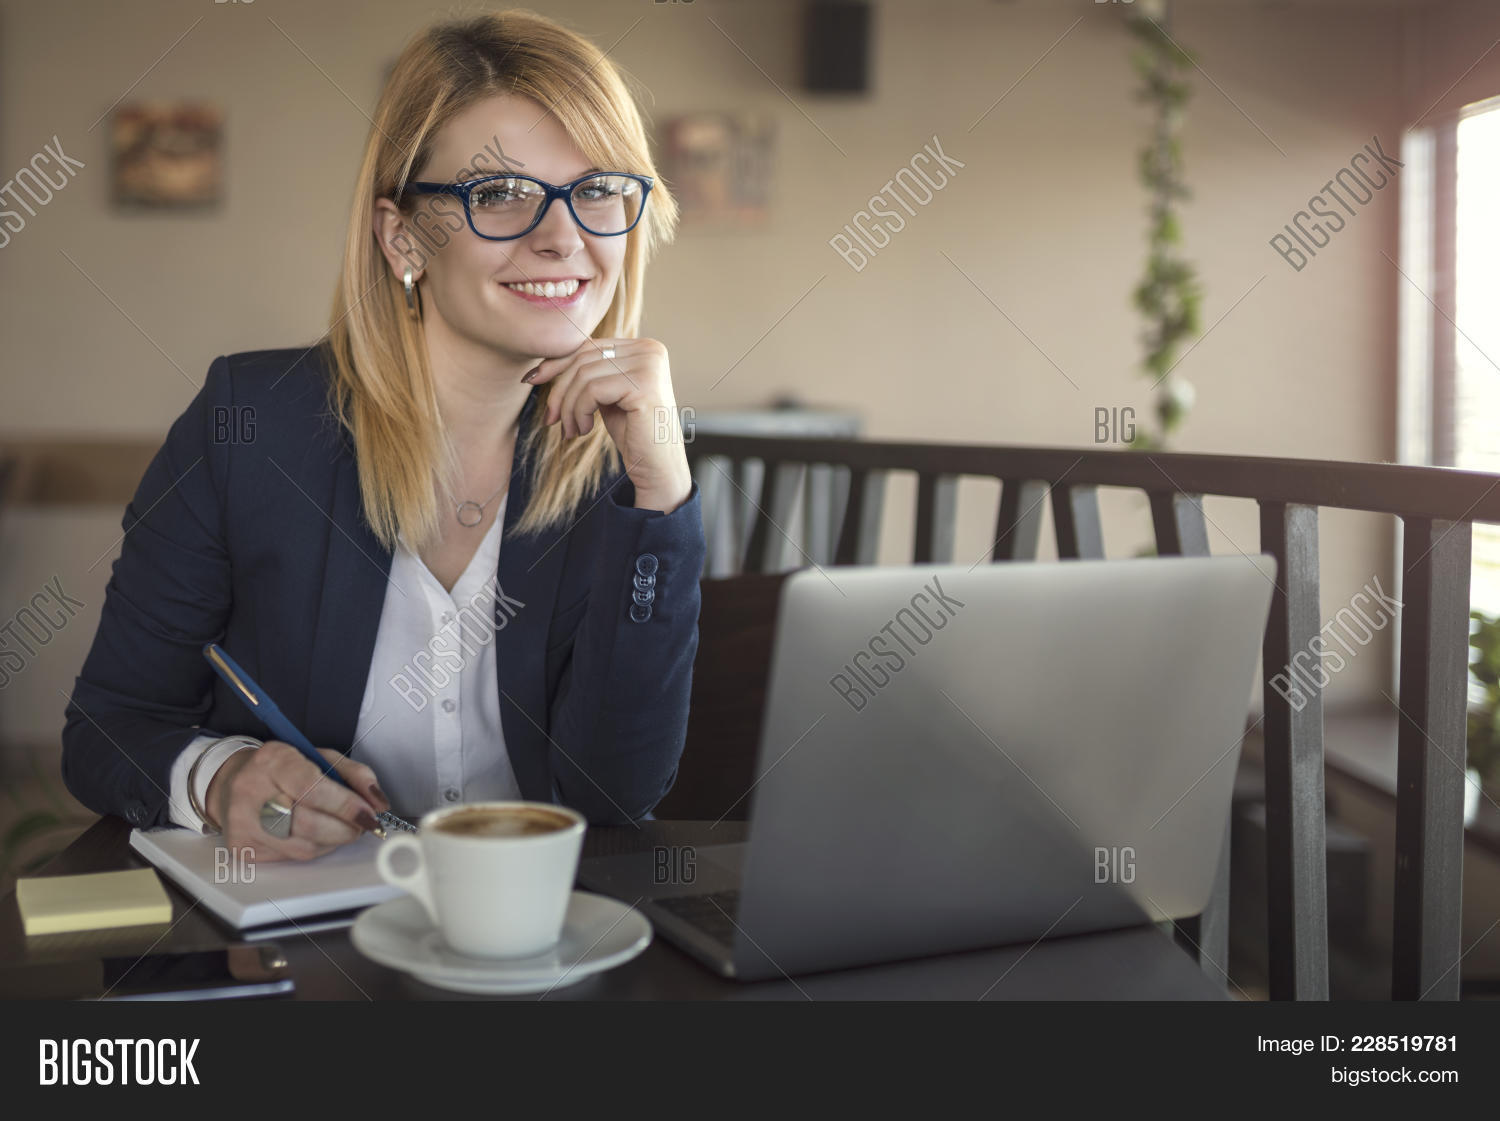 Business Woman Is Working On Computer, In A Coffee Shop, Restaurant. Charming Happy Woman Student Us